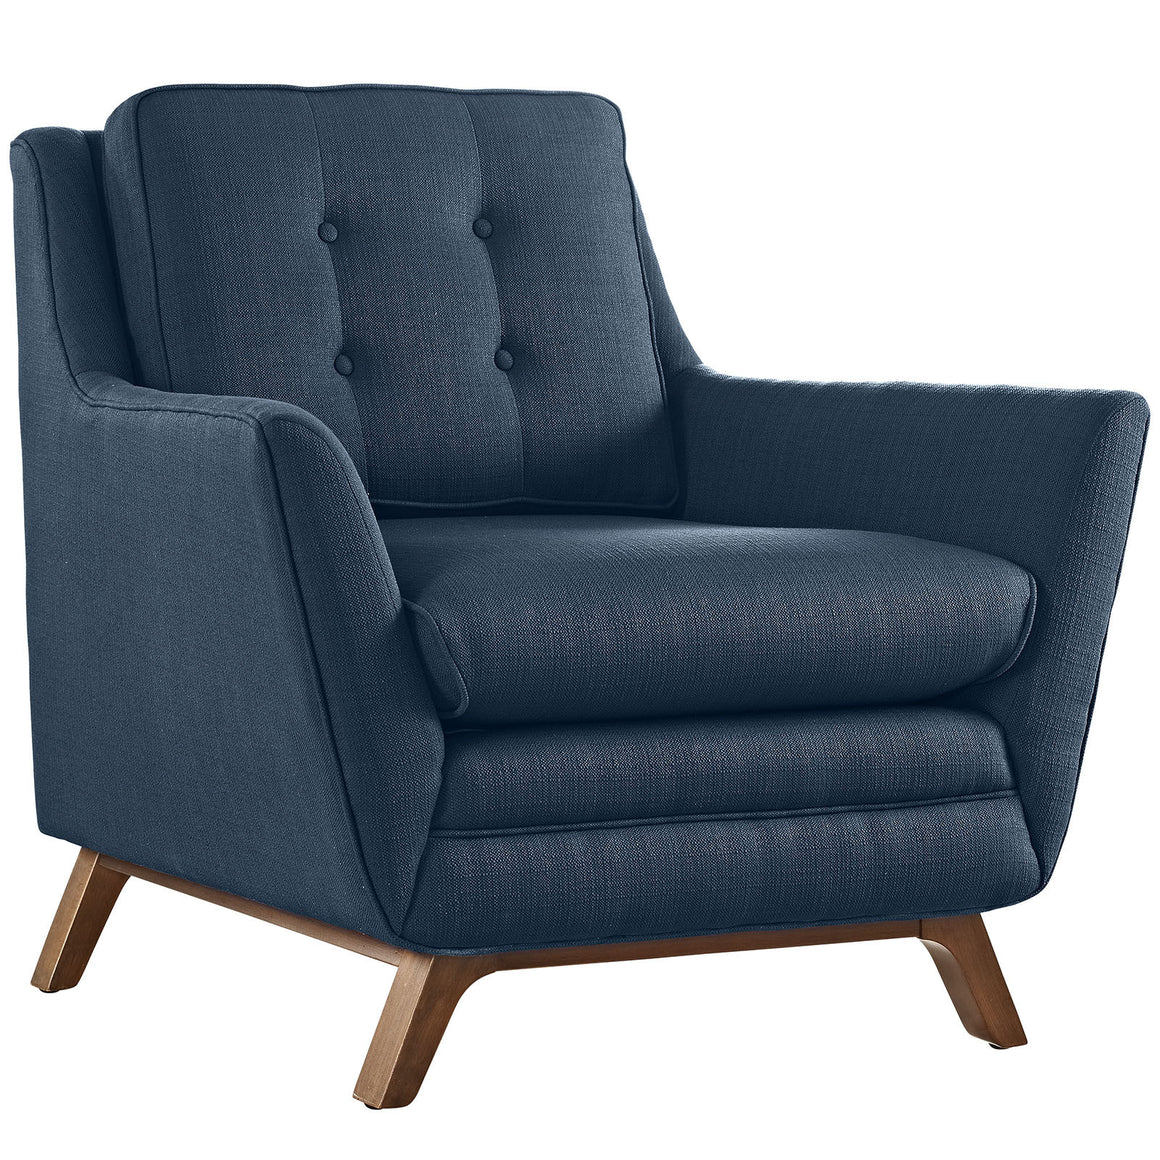 Beguile Upholstered Fabric Armchair in Azure